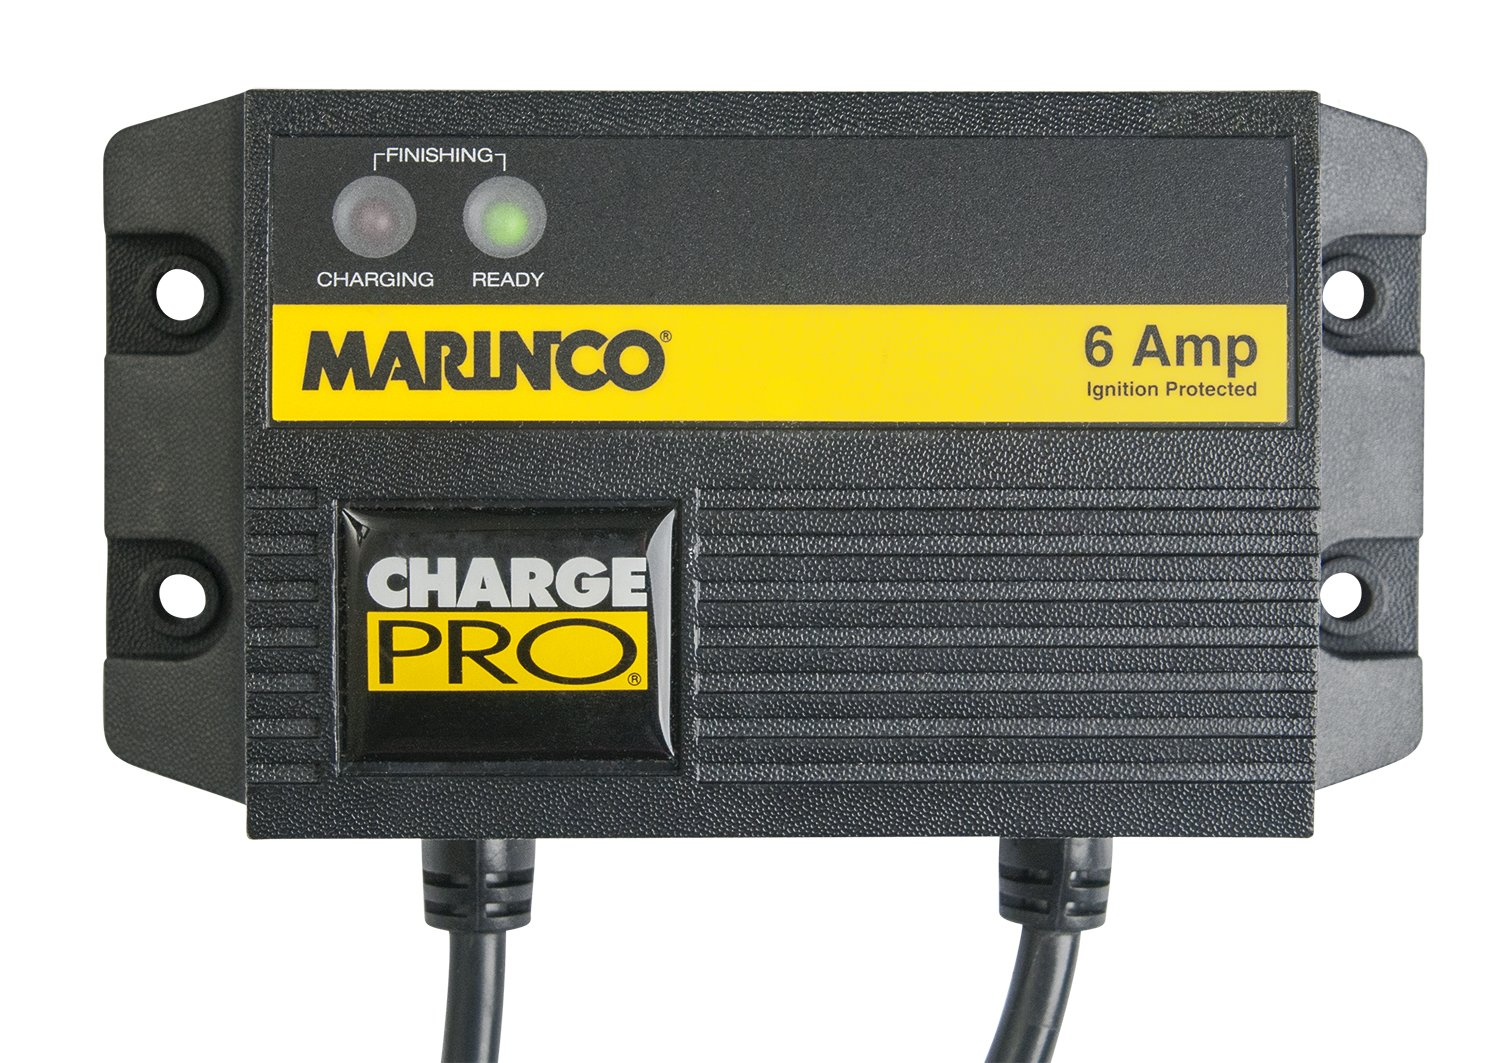 Marinco ChargePro 6-Amp 1 Bank 12V Waterproof Battery Charger by Marinco